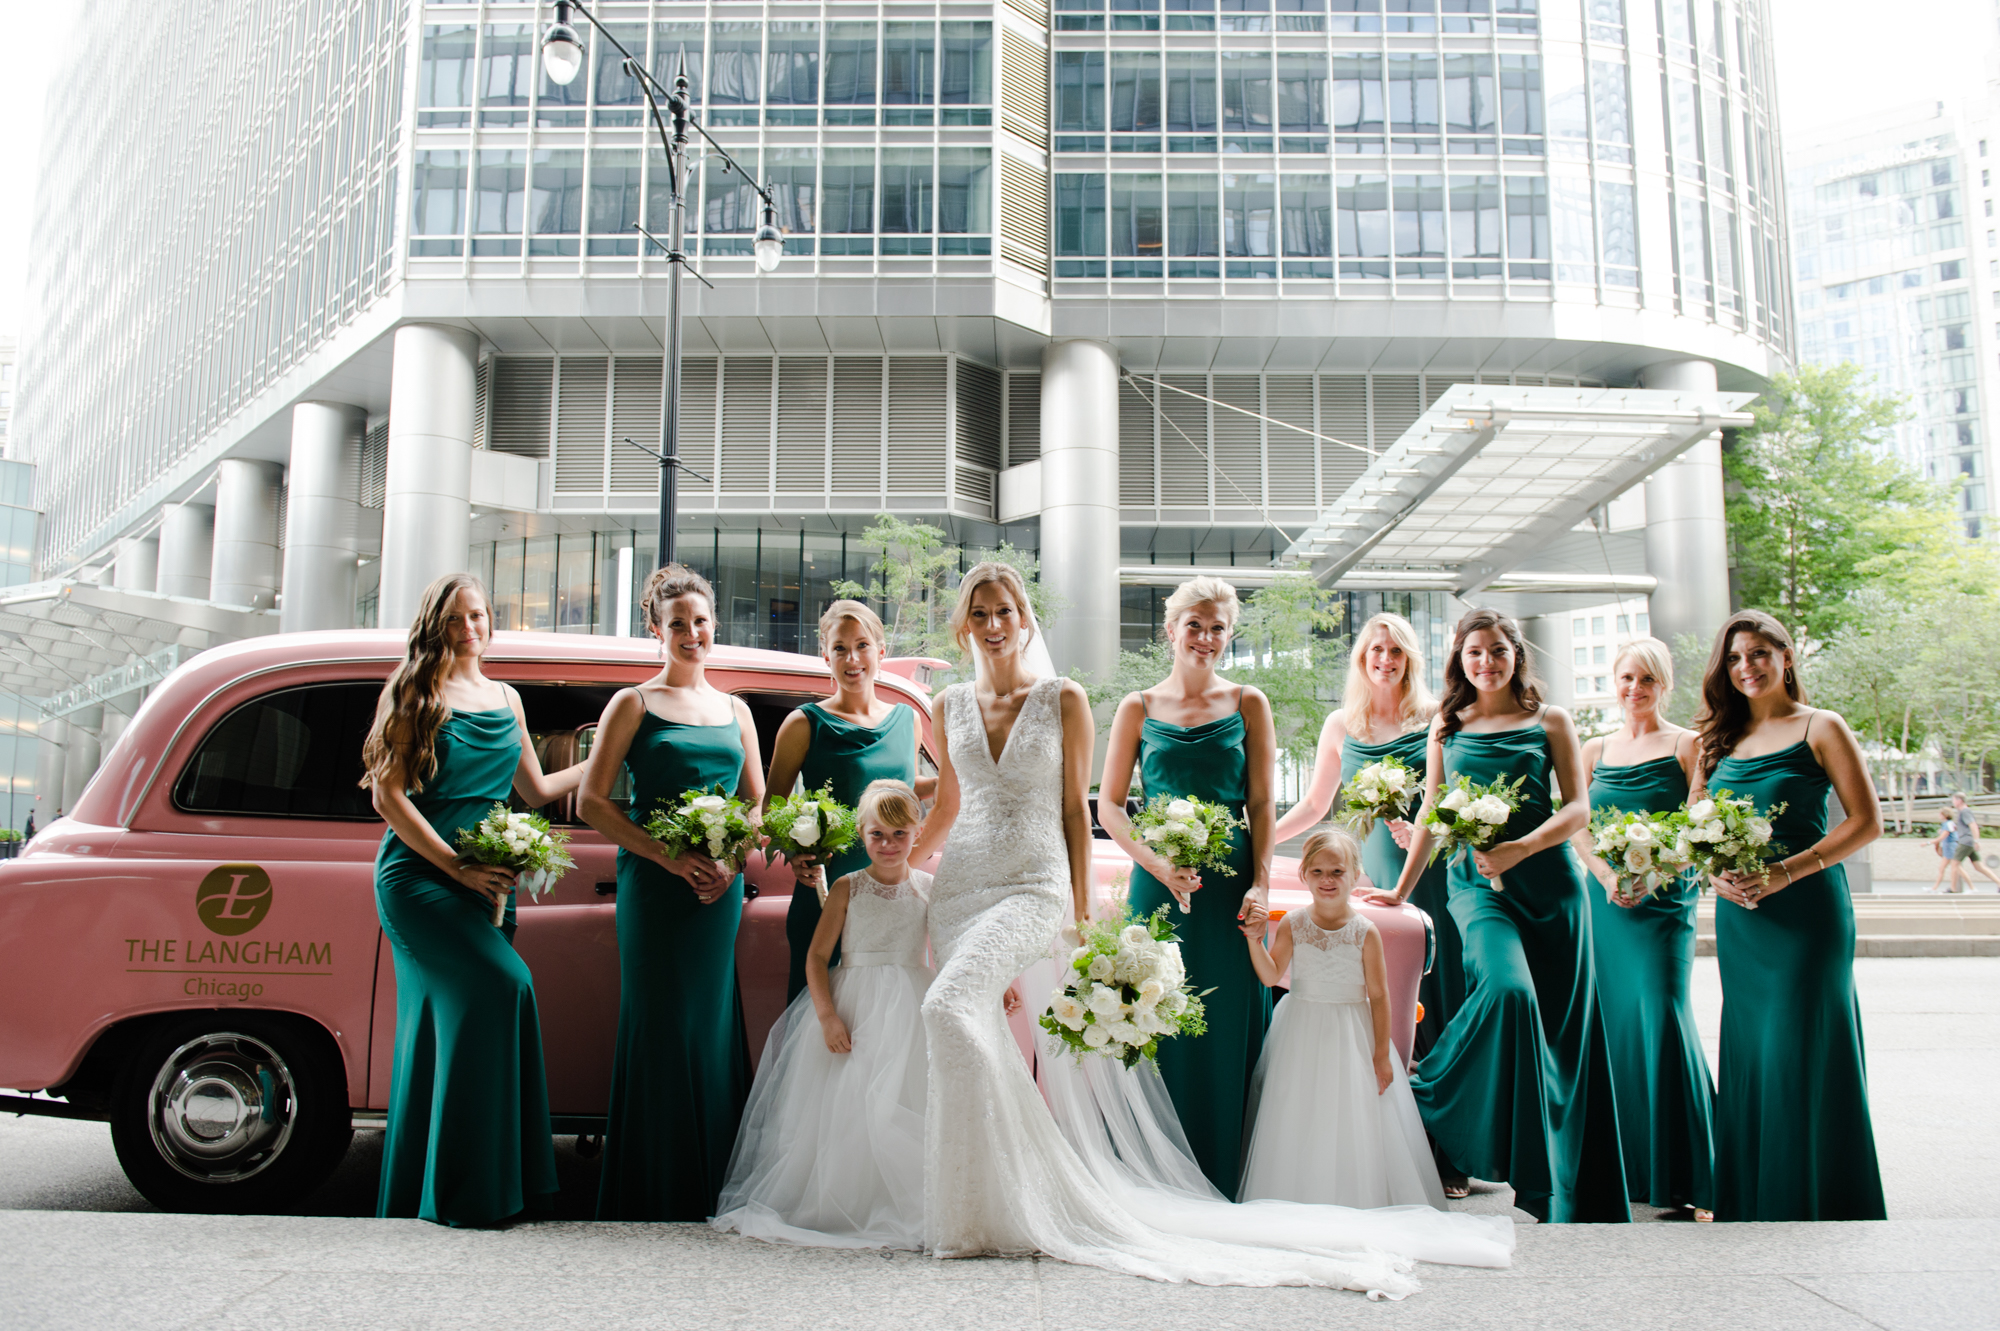 Portraits of bridal party outside the Langham Hotel in Chicago